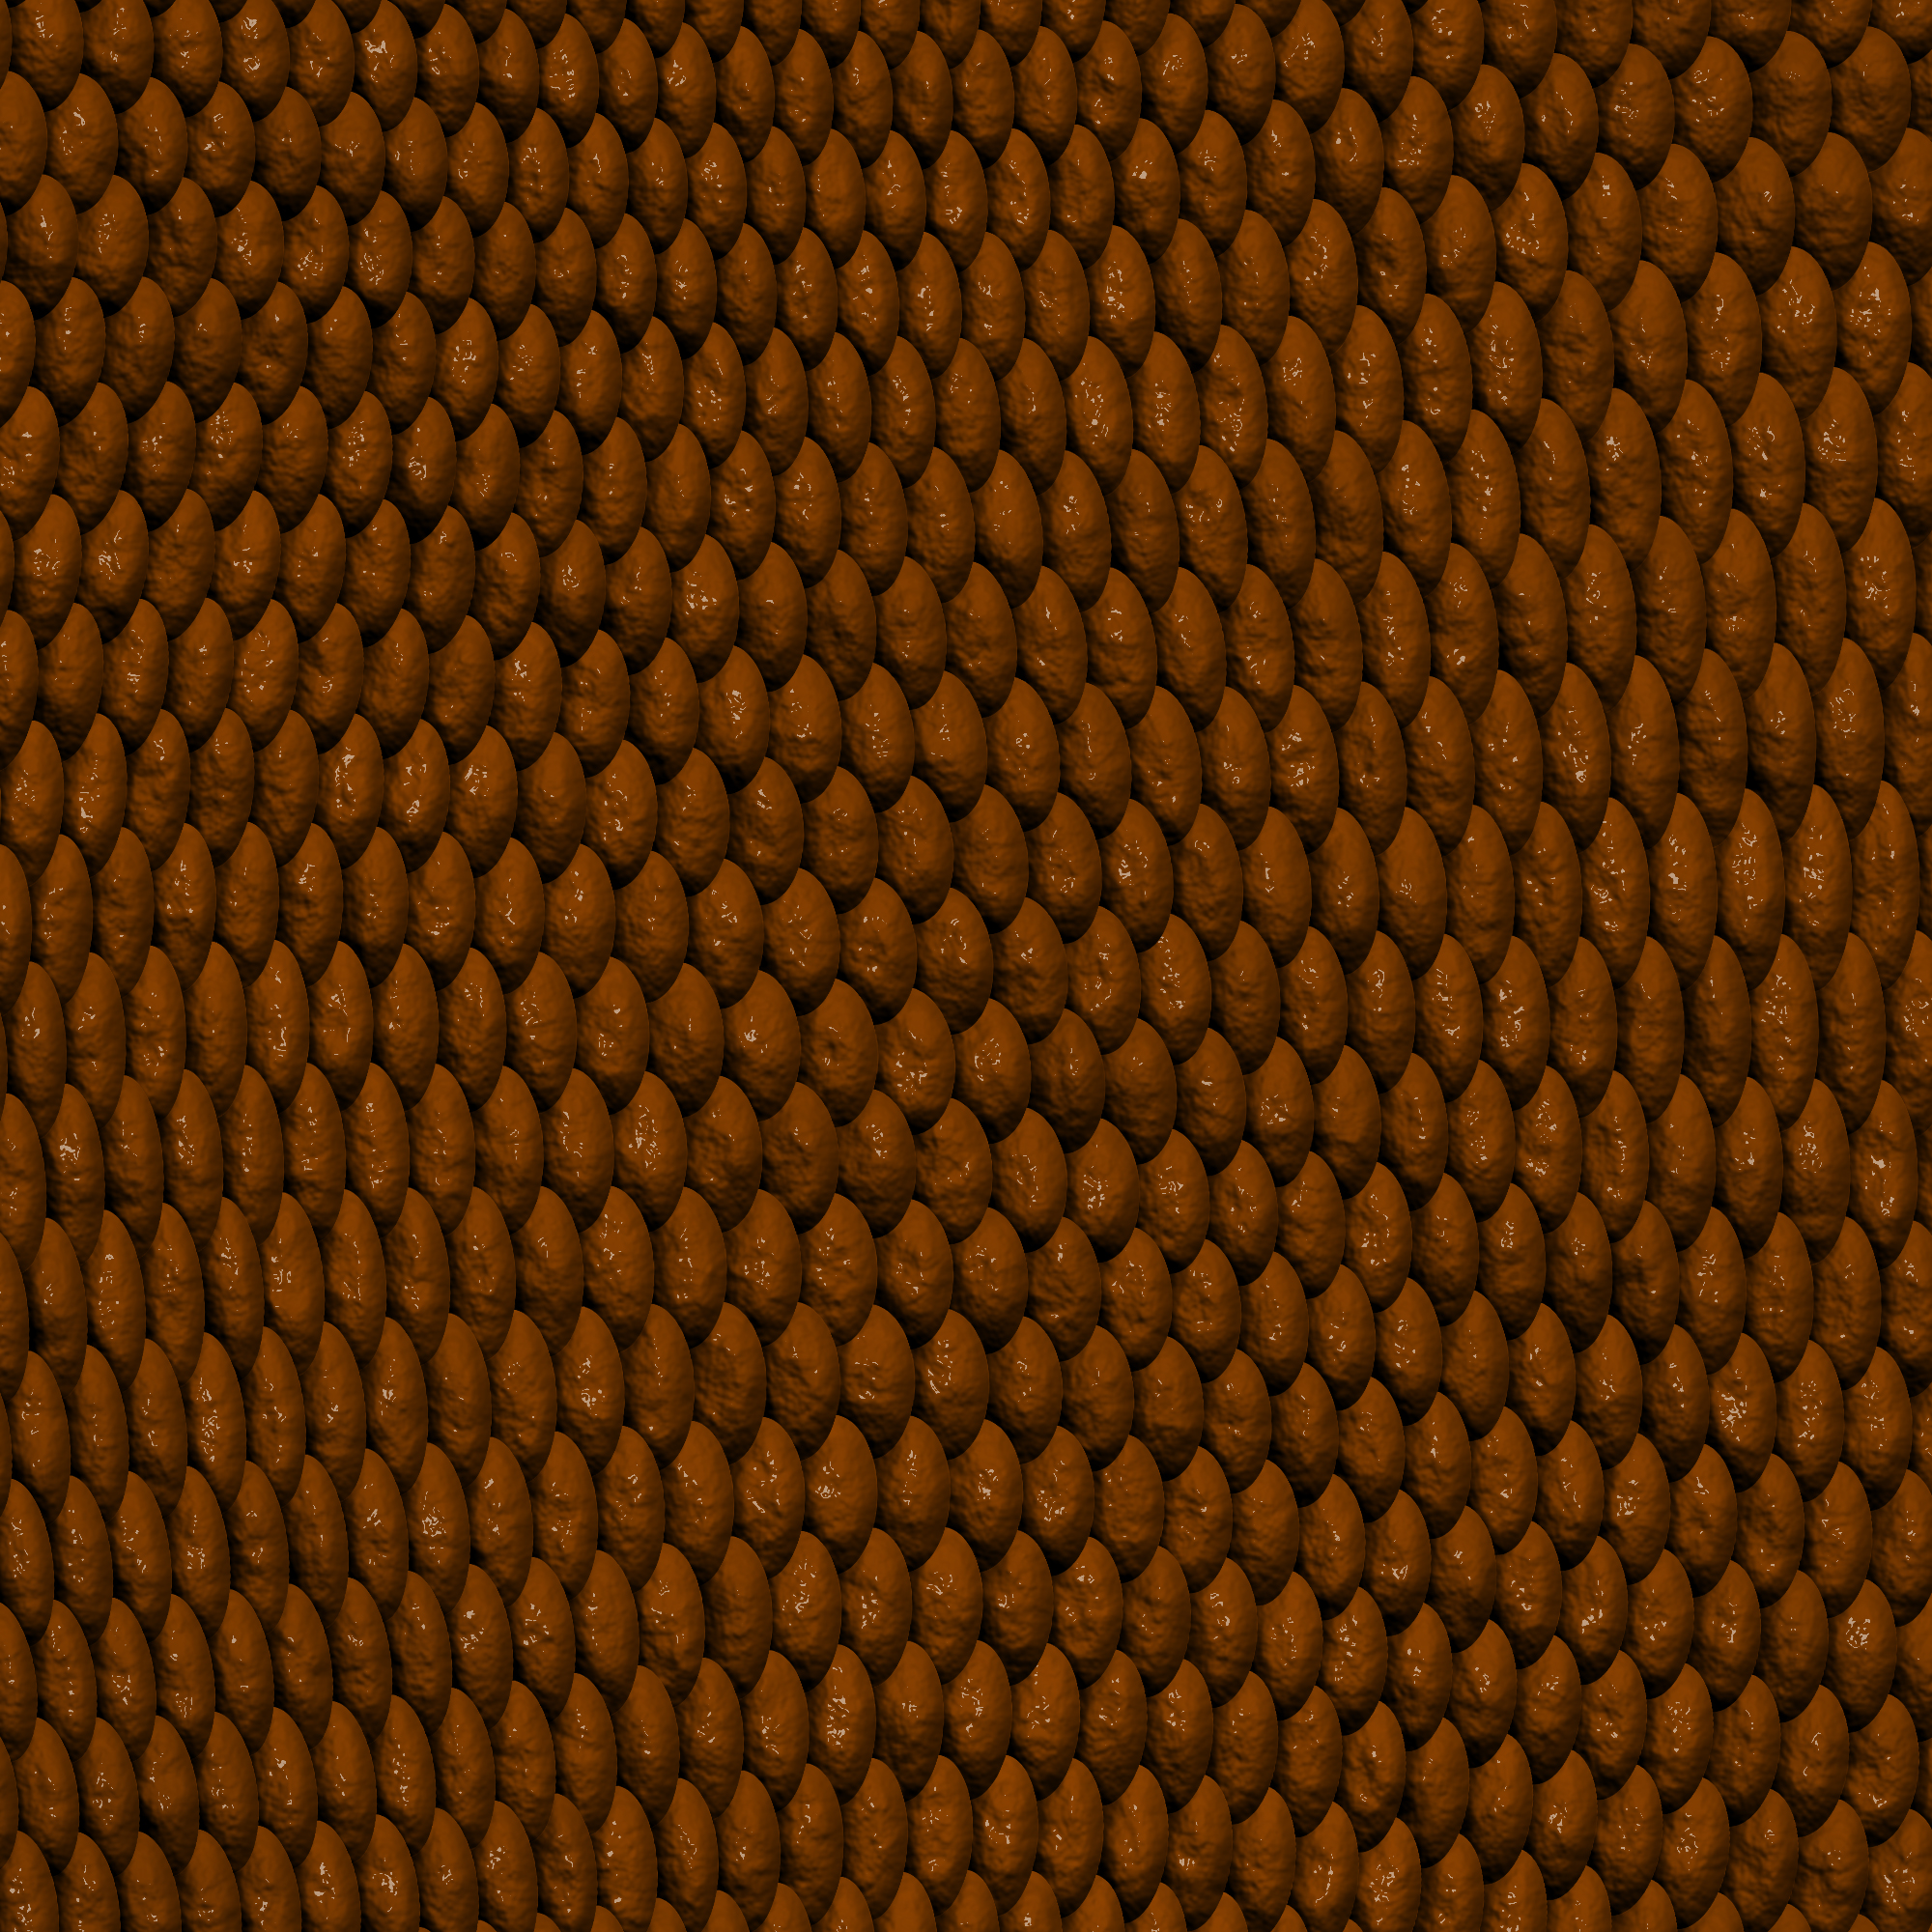 Reptiles skin texture, skin reptiles, snakes, lizard skin, background